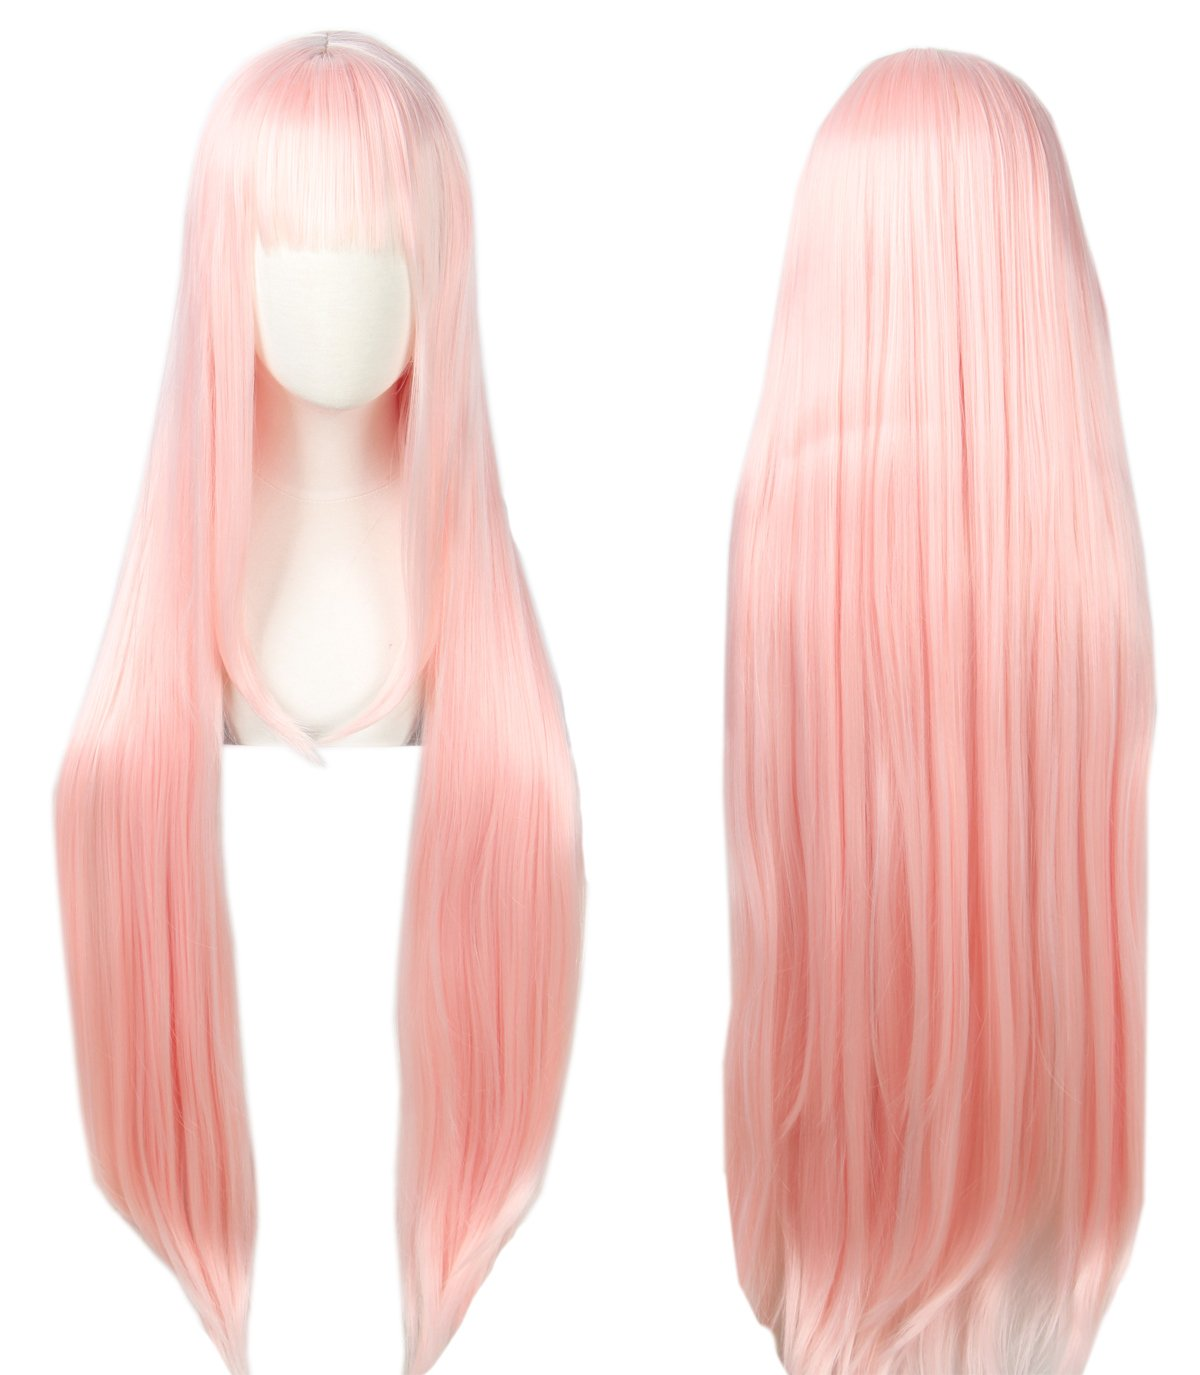 Linfairy Anime Cosplay Pink long Princess Wig Halloween Costume Wig for Women